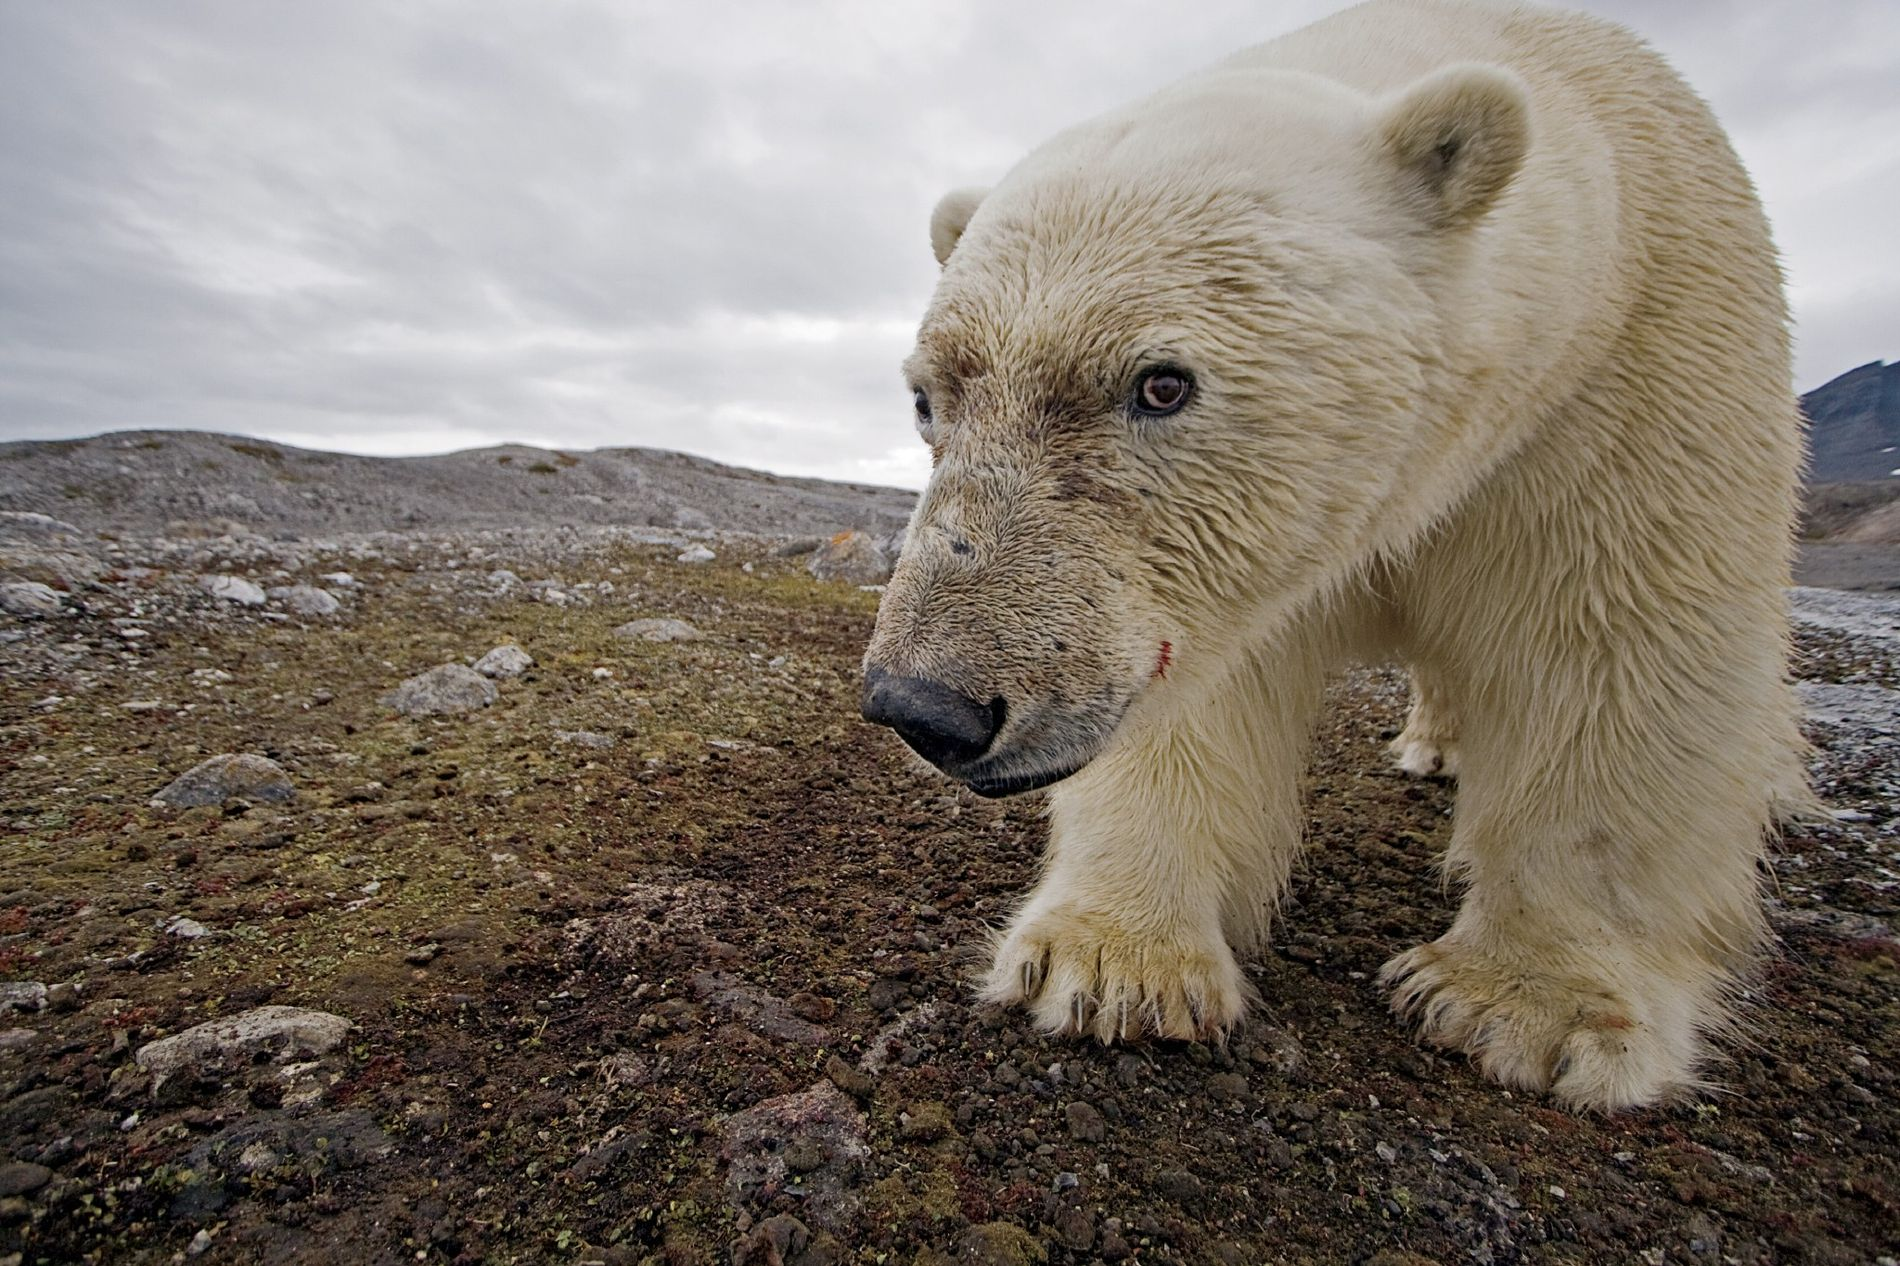 Thanks to a camera trap, a polar bear unwittingly makes a self-portrait in Svalbard.